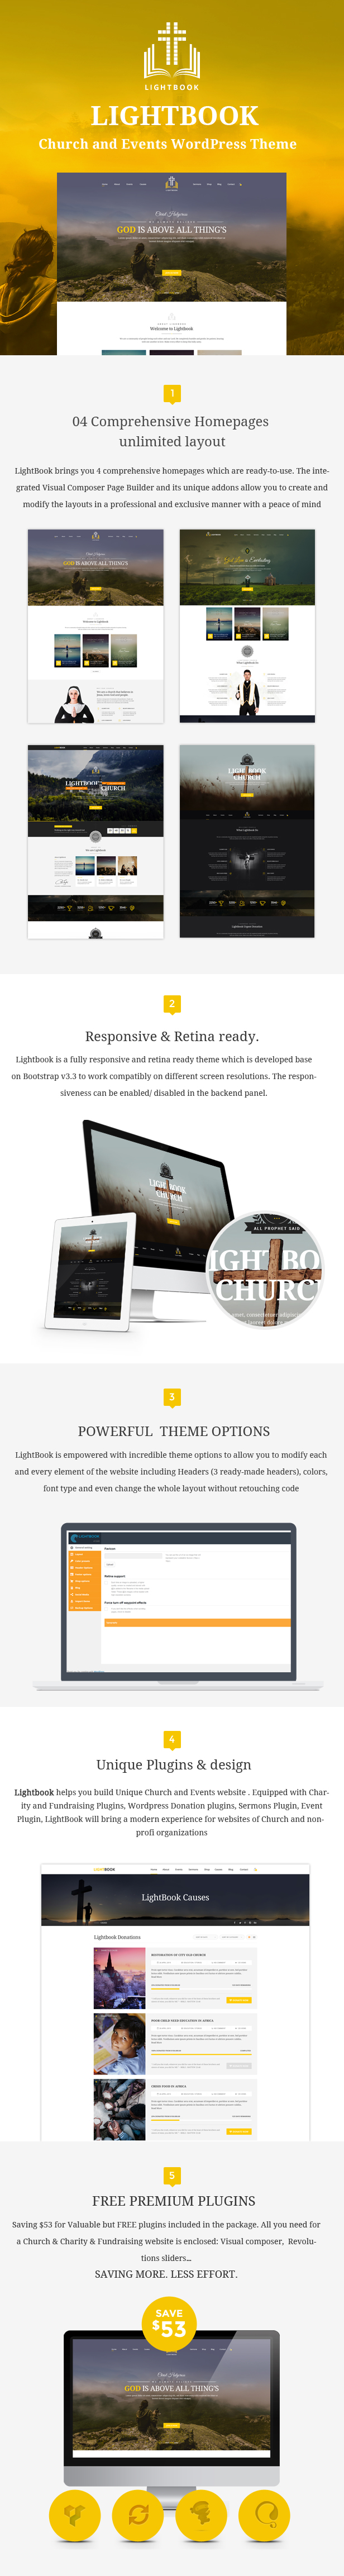 LightBook  WordPress theme